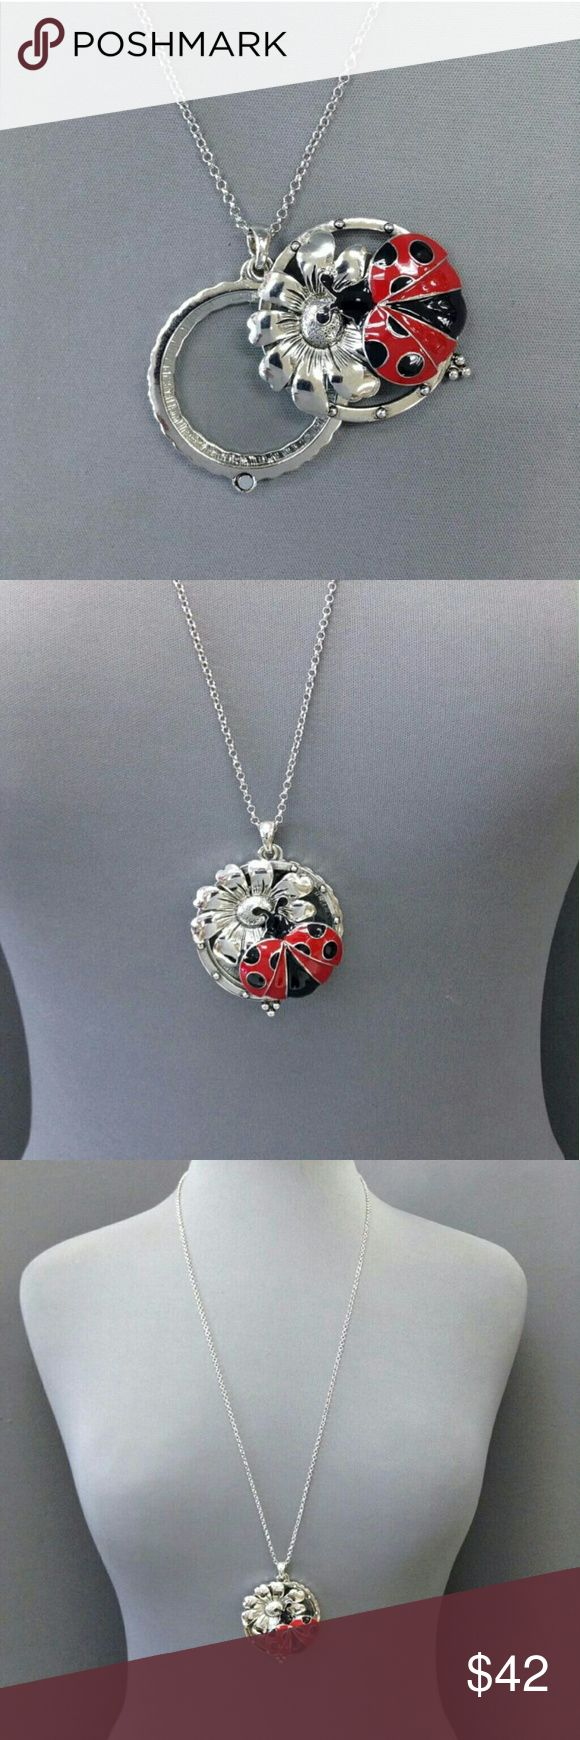 """Long Ladybug Magnifying Glass Necklace Brand new! Never taken out of plastic.  Pendant opens up to a magnifying glass. Chain is 30"""" in length.  Offers welcome! Jewelry Necklaces"""